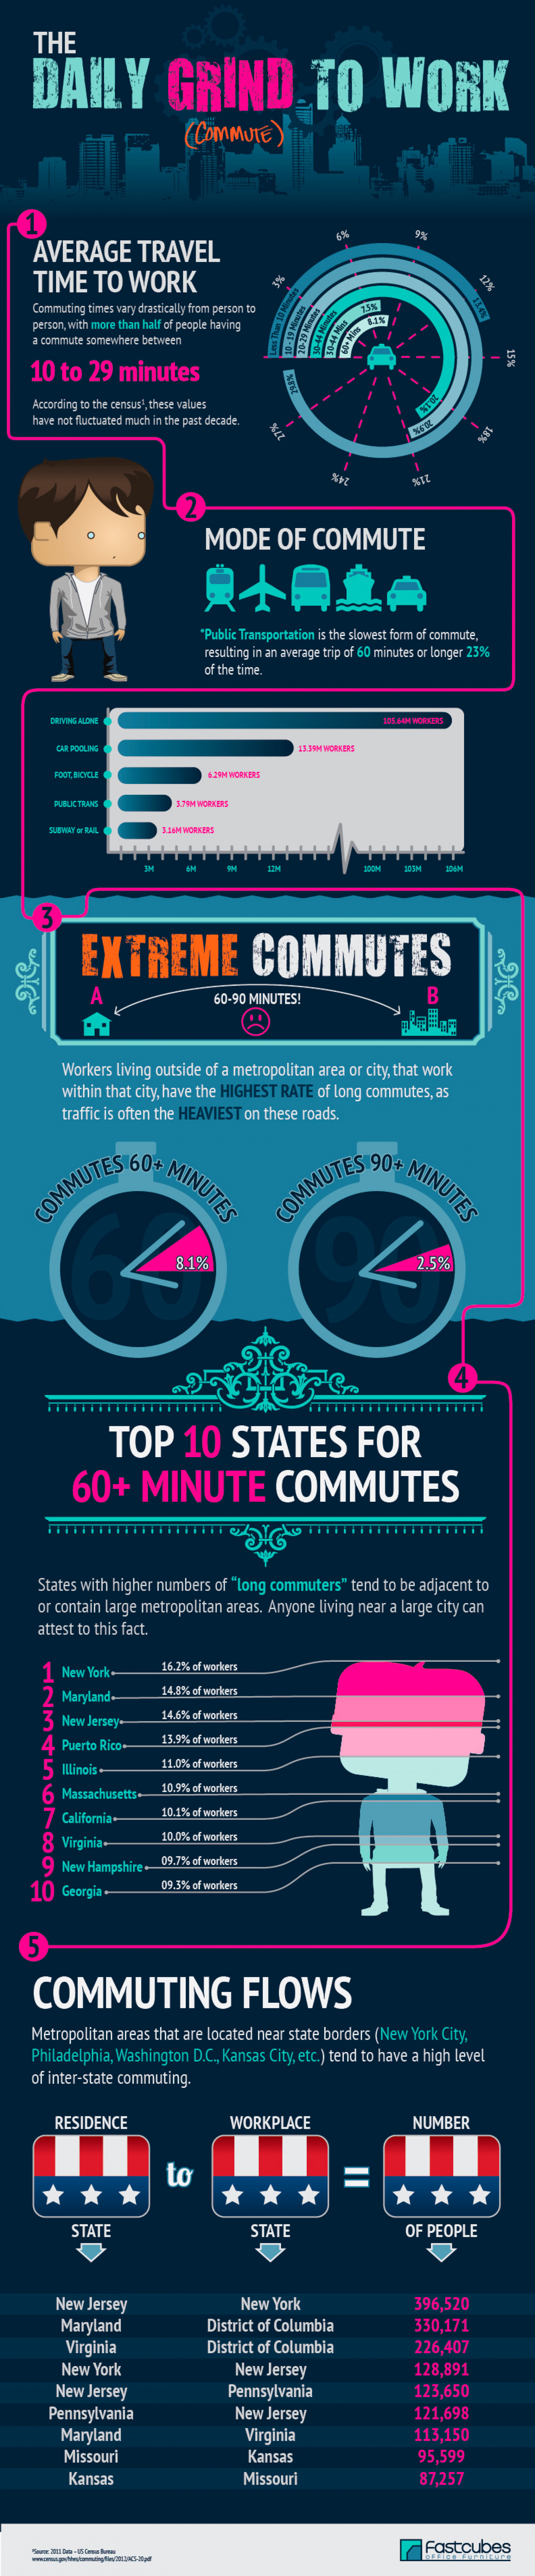 The Daily Grind (Commute) to Work Infographic